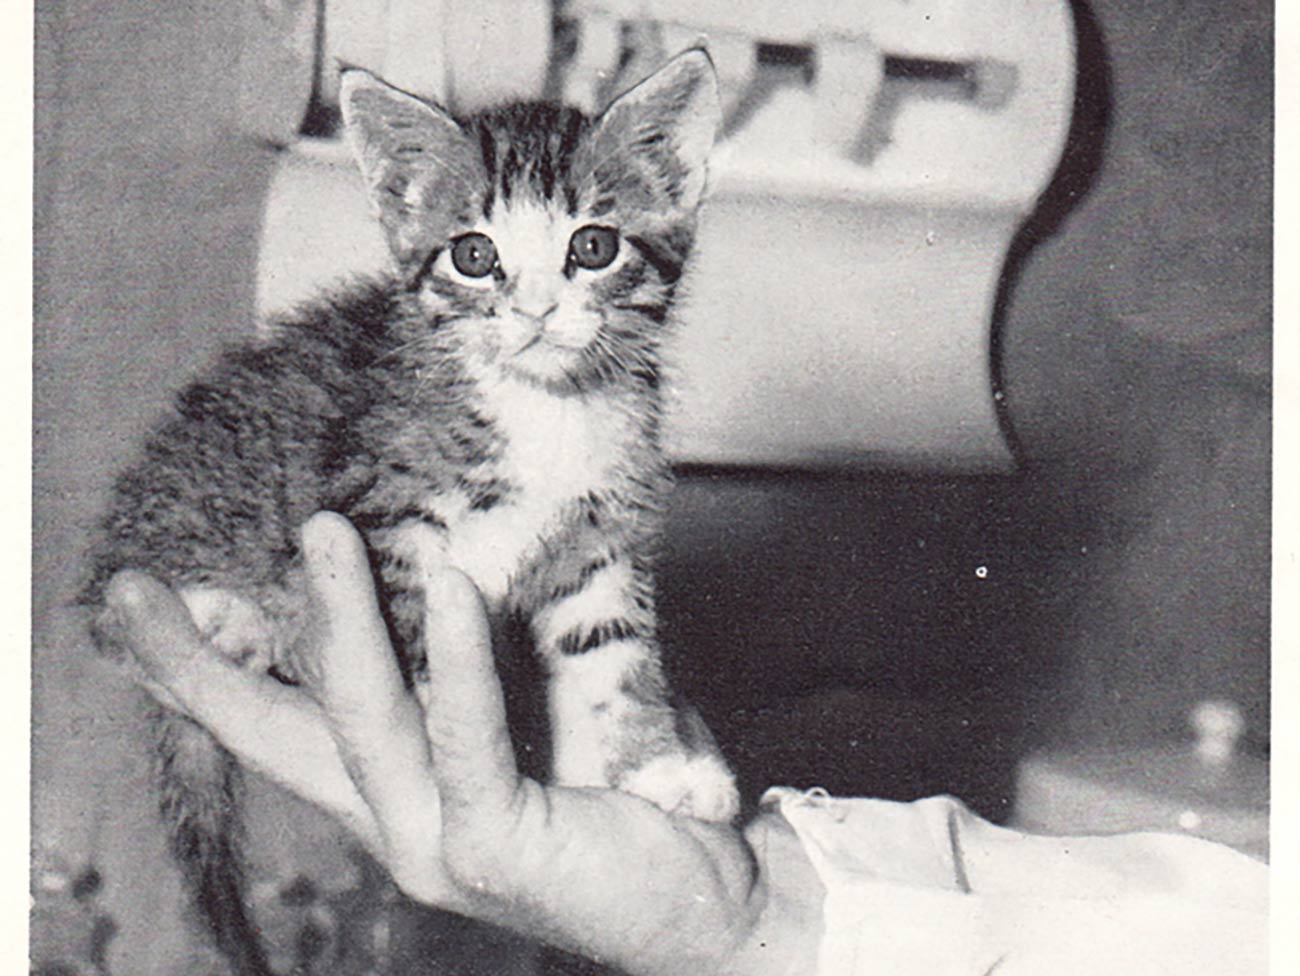 black and white photo of a small kitten being held in the palm of a man's hand